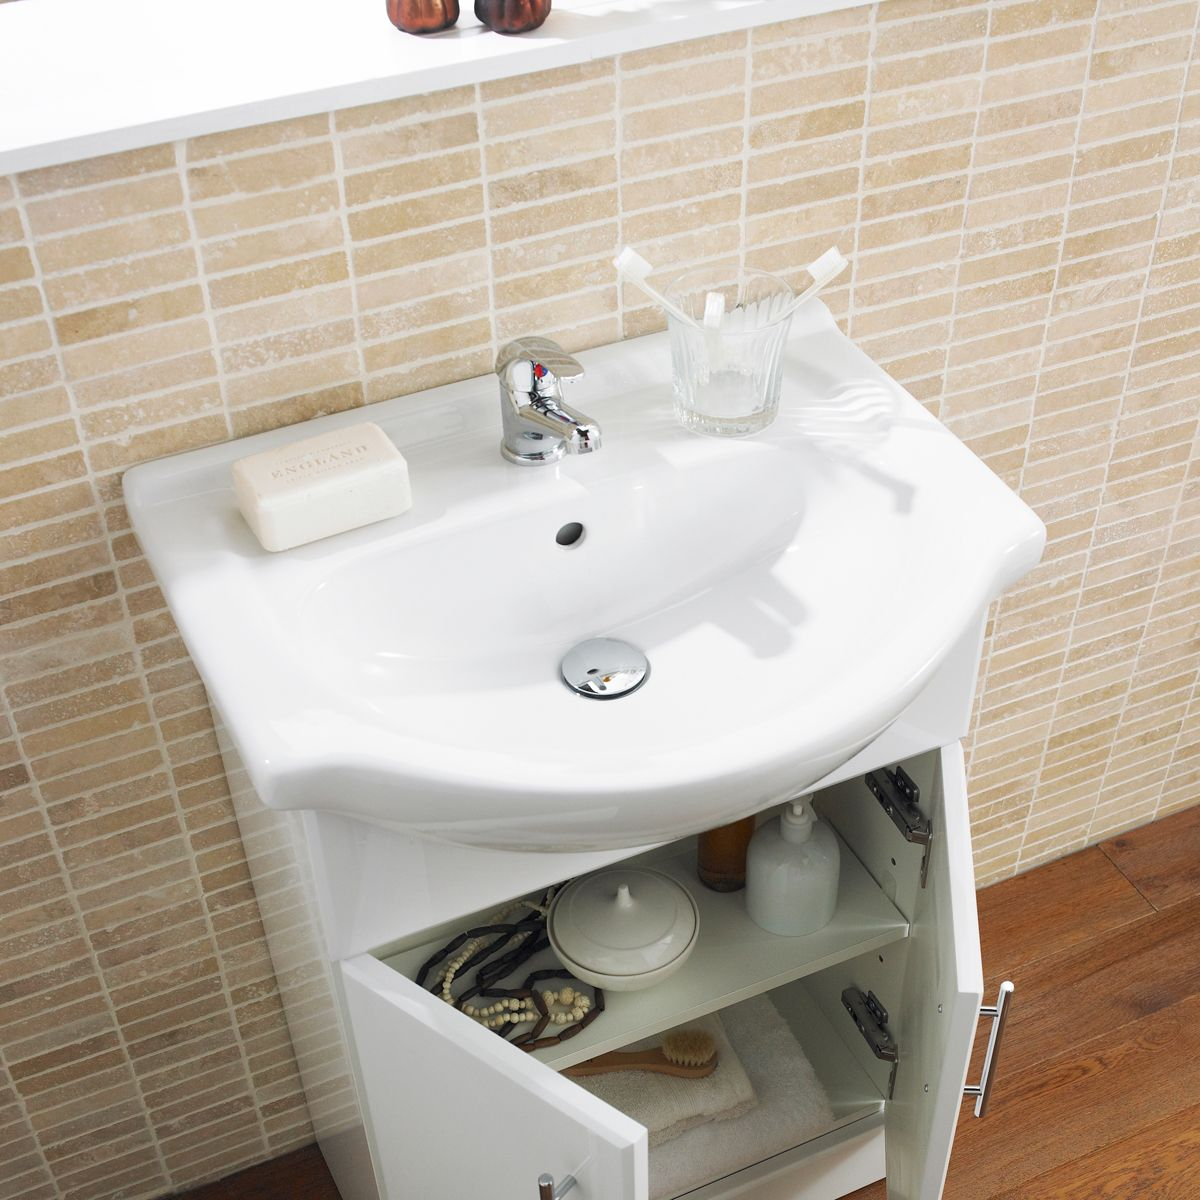 Premier Saturn Furniture Pack Round Basin